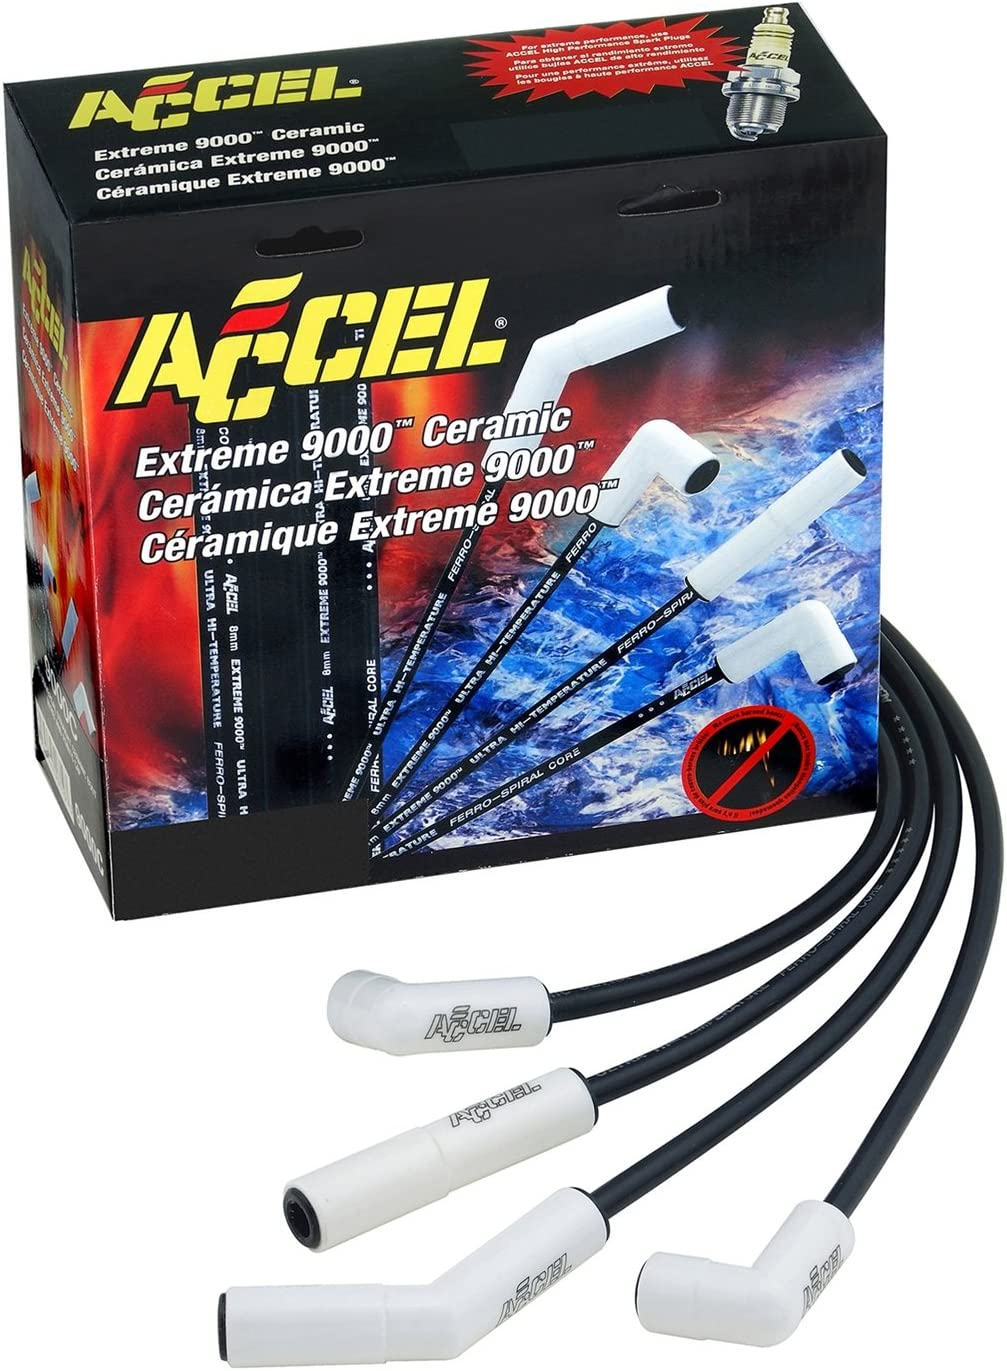 ACCEL 9065C Ceramic Spark Plug Wire Truck Kansas City Mall GM gift for Set 01-04